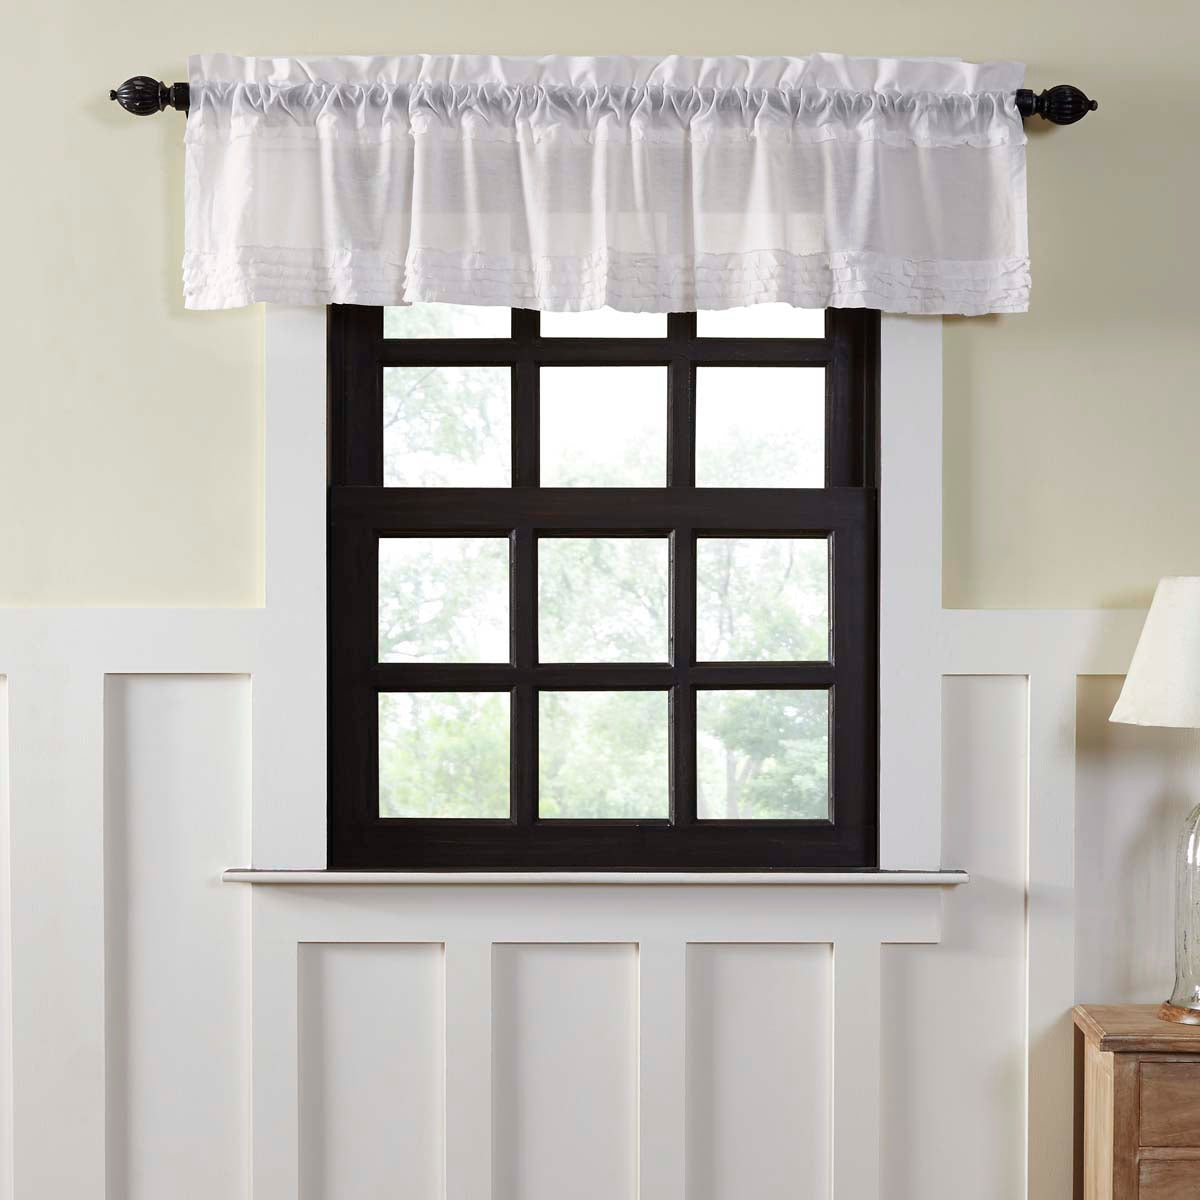 White Ruffled Sheer Valance Curtain 16x72 - Woodrol